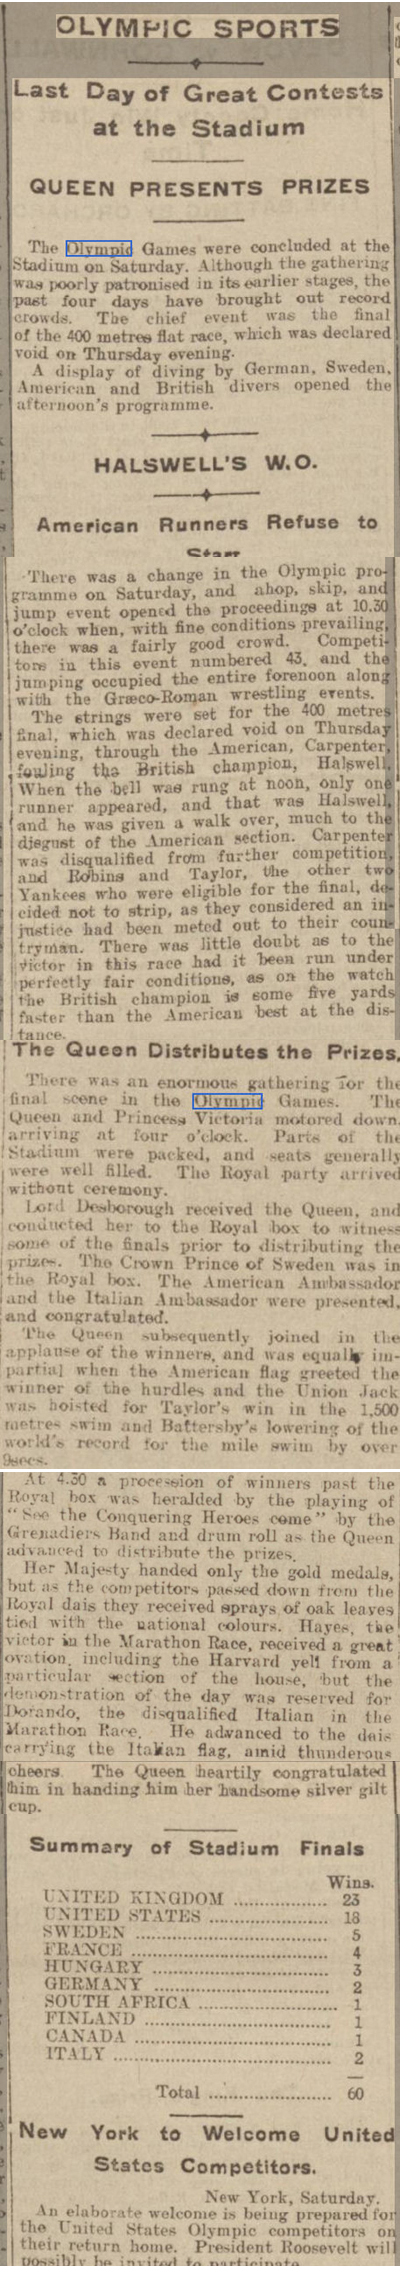 newspaper story about the closing ceremony of  the 1908 Olympics